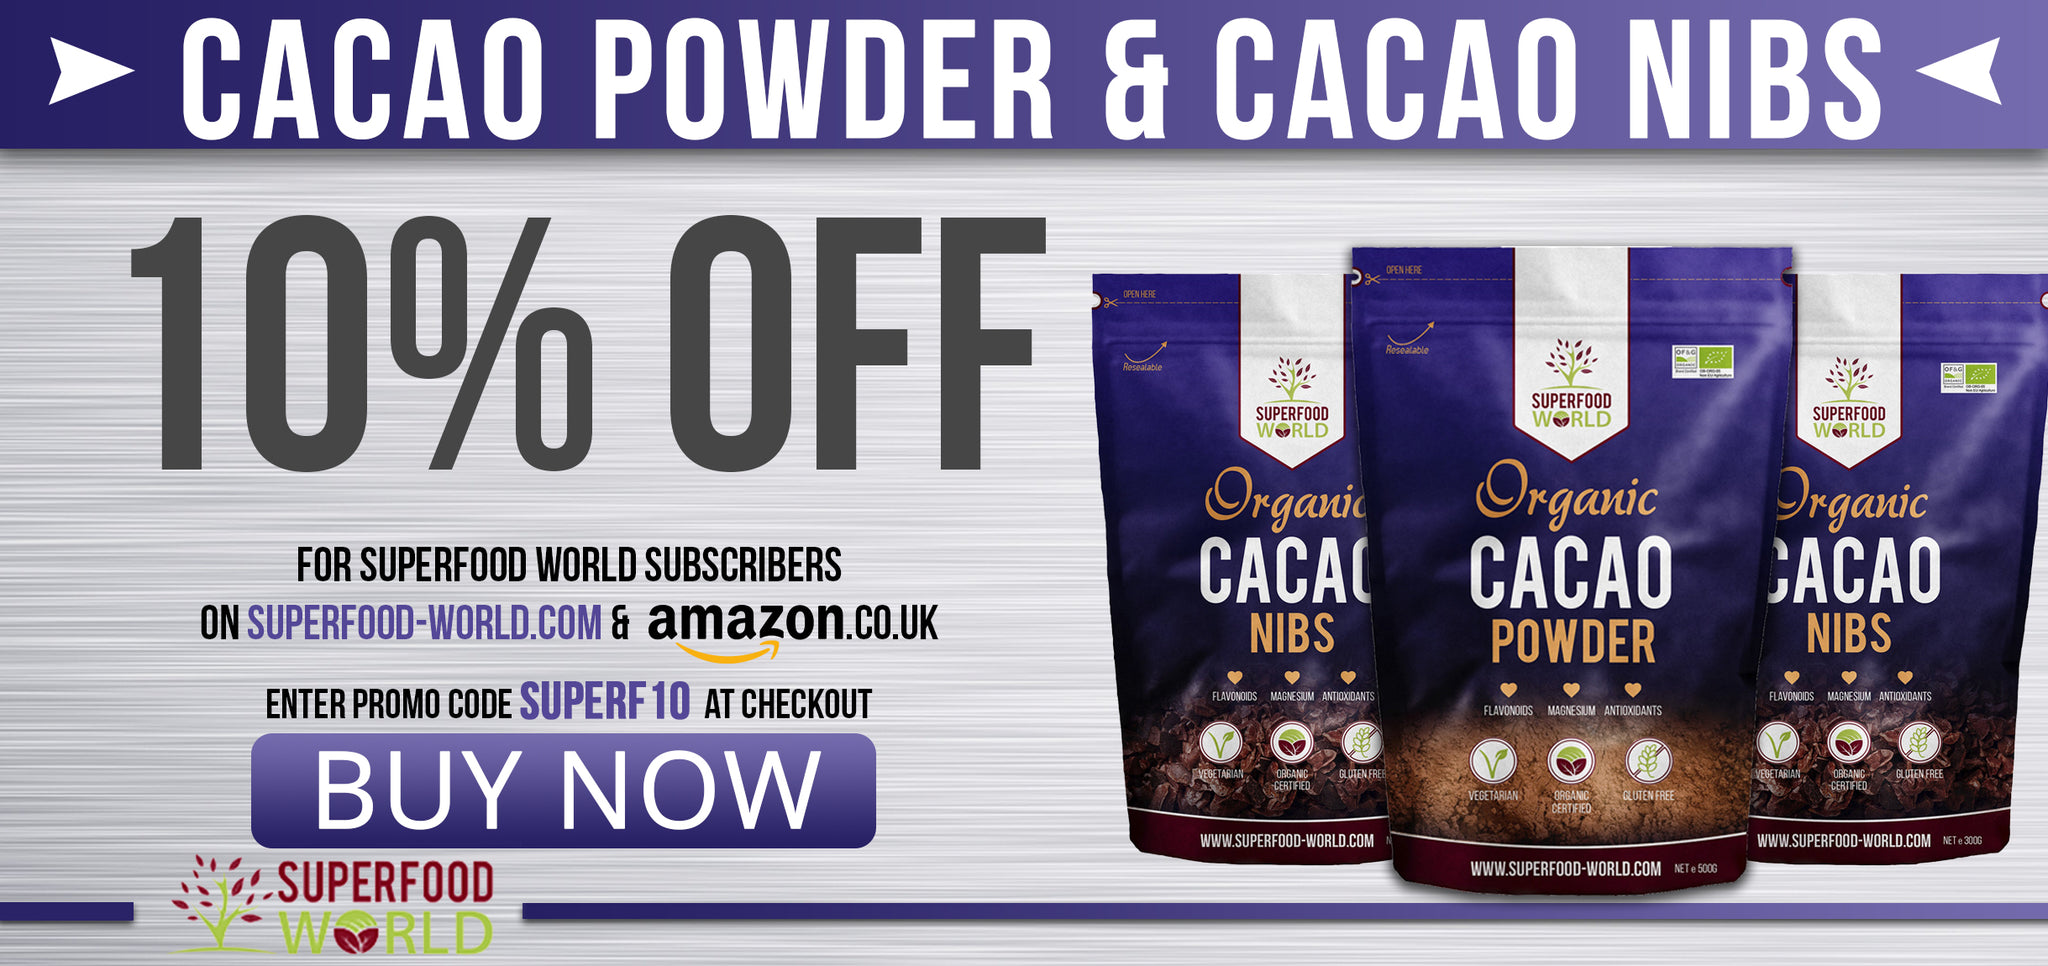 Buy Cacao Powder and Cacao Nibs